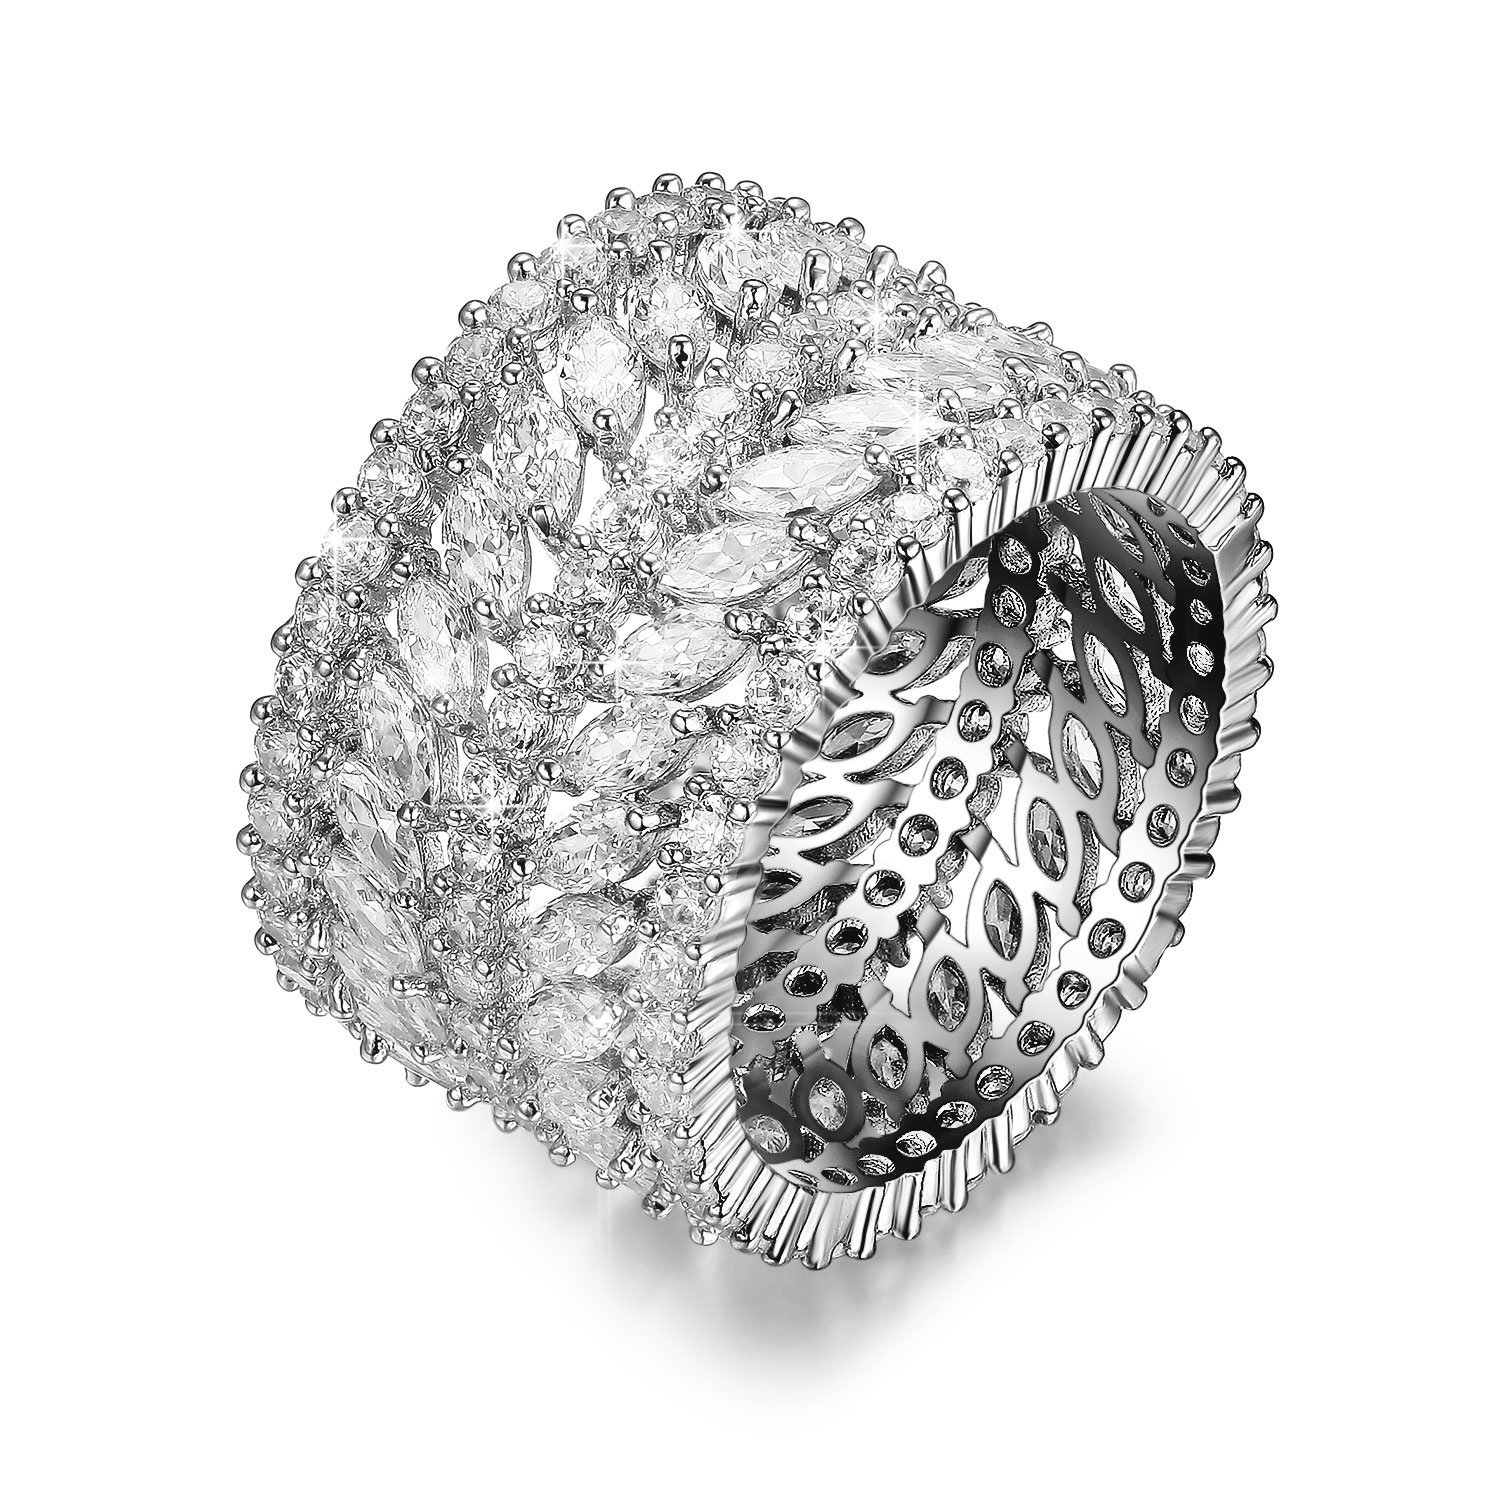 DIFINES Redbarry Vintage CZ Diamond Wide Band Eternity Statement Rings 18k White Gold Plated, Size 8